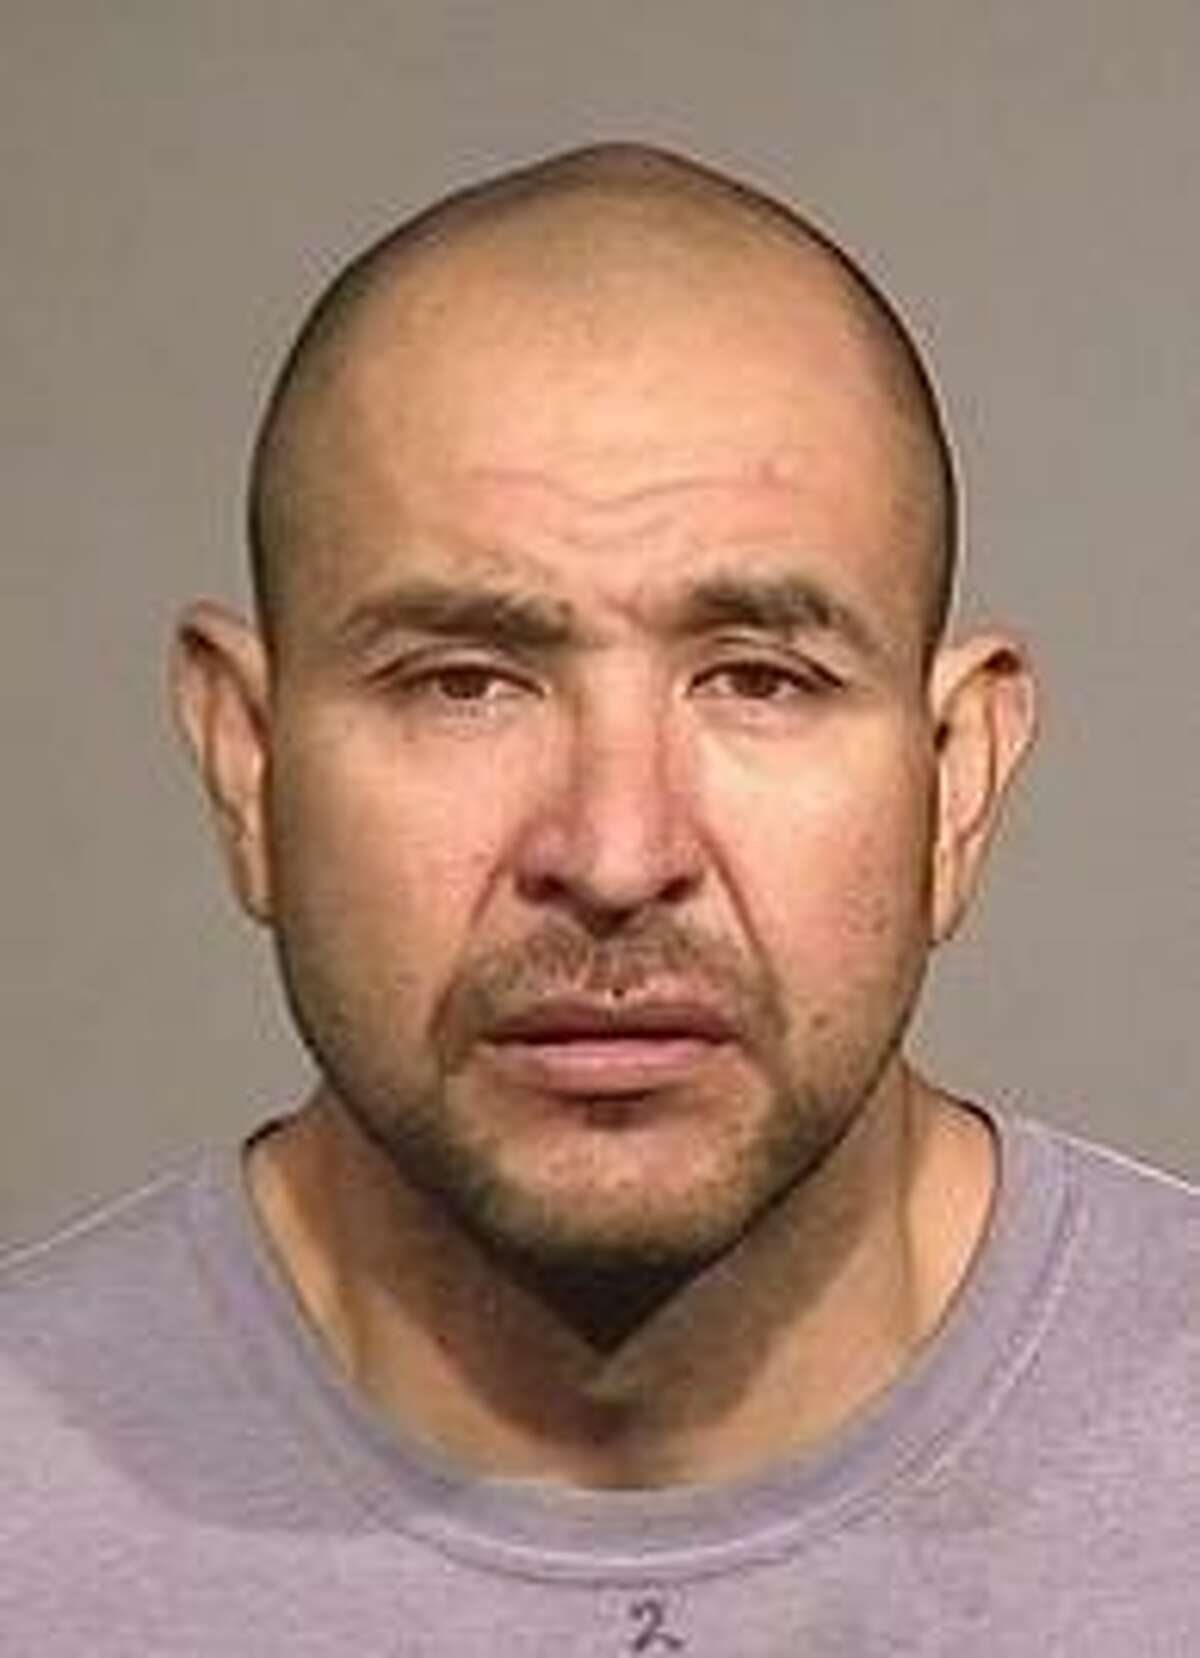 Gerardo Mendoza Ordaz, 42, was arrested on suspicion of drowning his 4-year-old daughter in the baptismal font of a Catholic church in Healdsburg across the street from a police station.